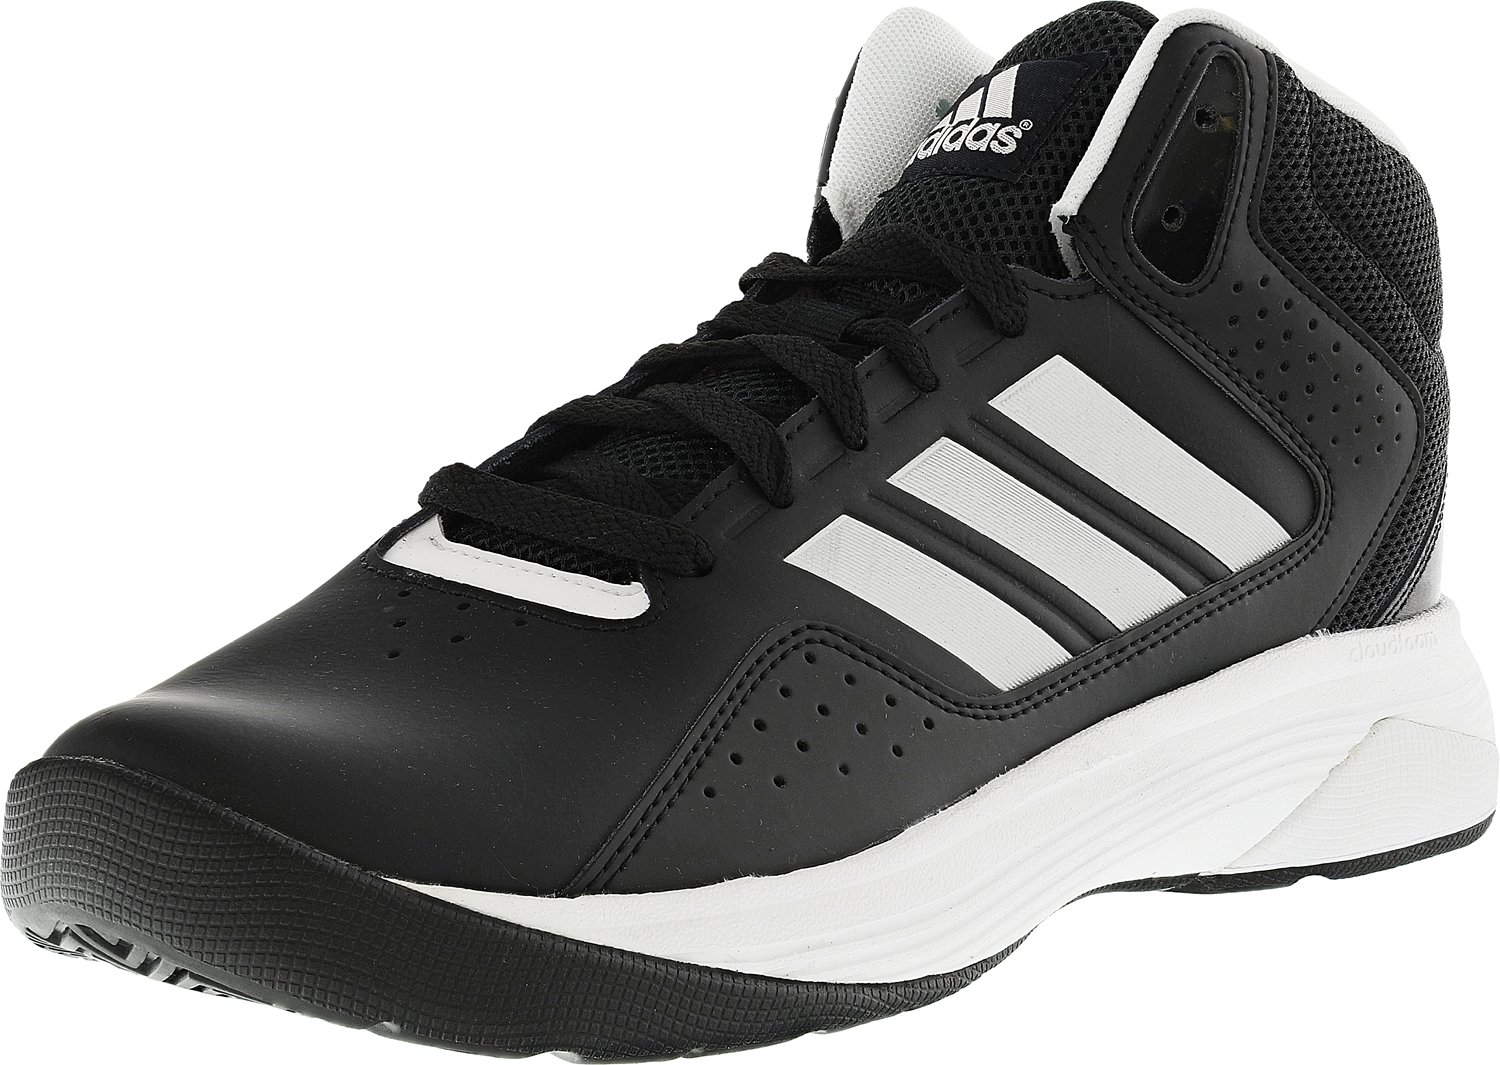 adidas Men's Shoes | Cloudfoam Ilation Mid Basketball, Core Black/Matte Silver/White, (9 W US)